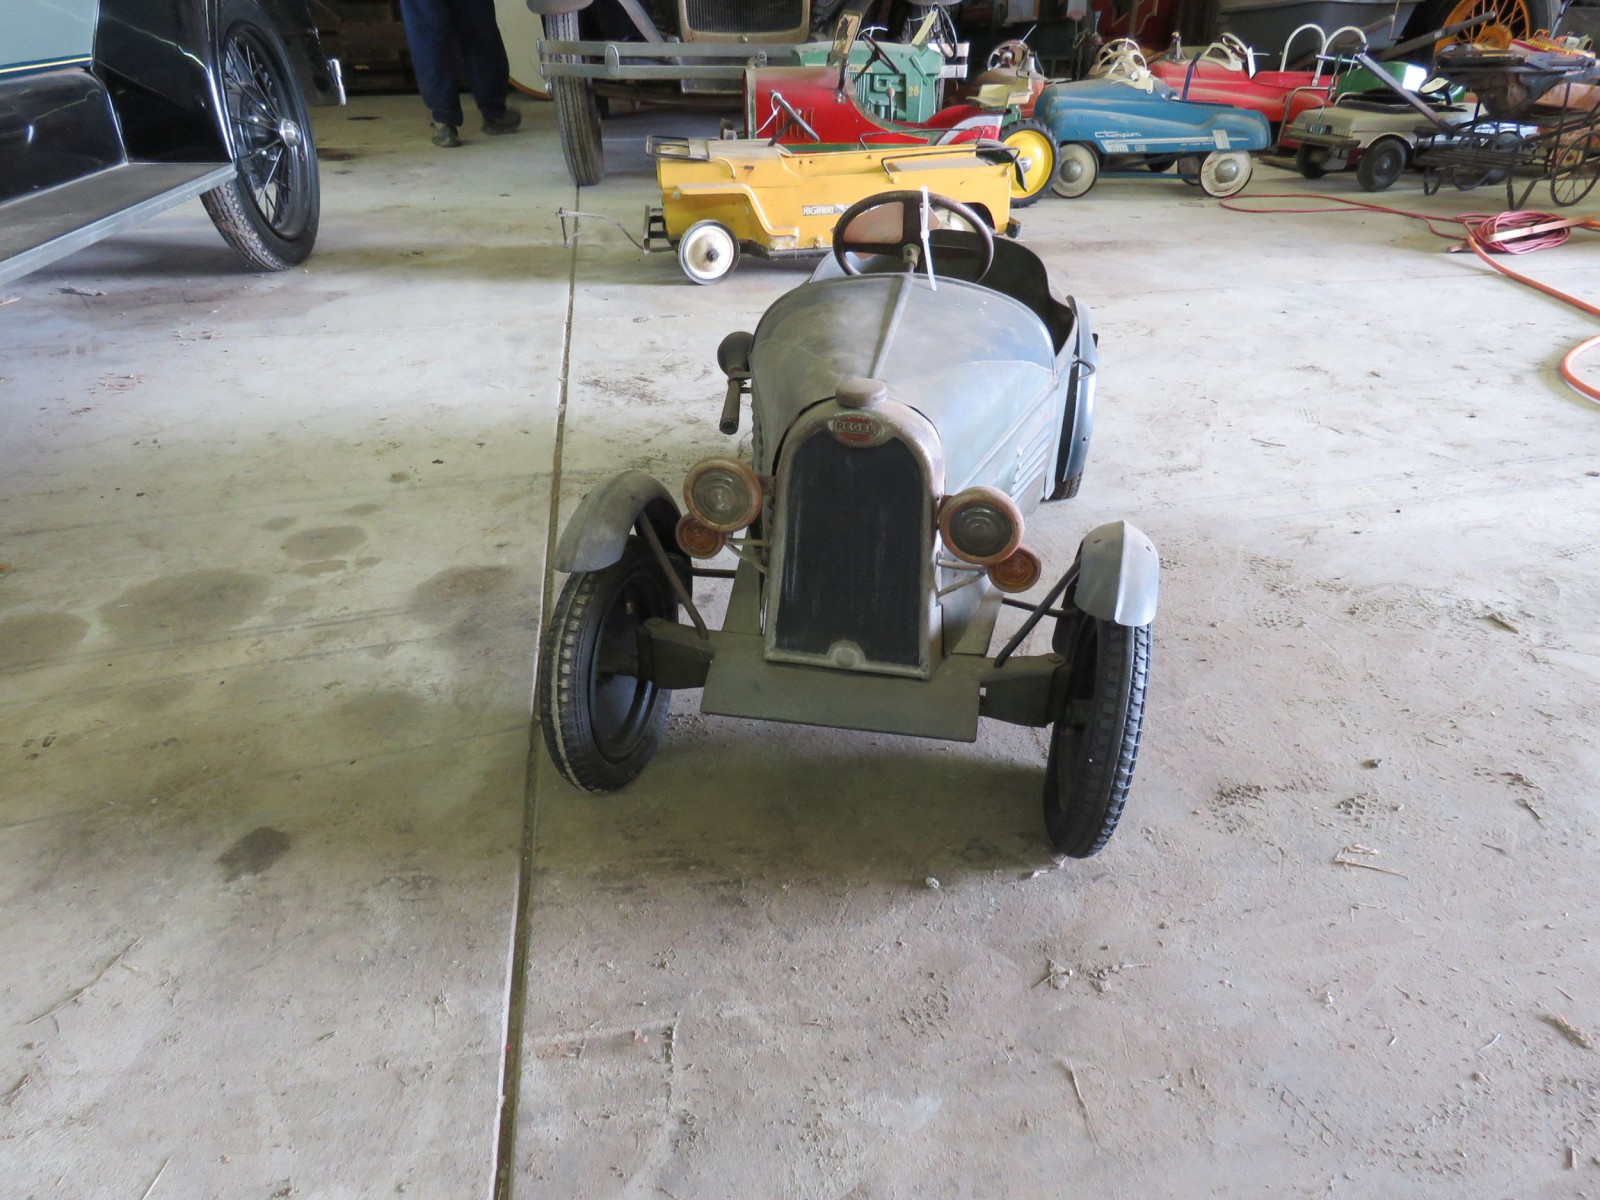 Vintage Regal Cycles Roadster Pedal Car - Image 2